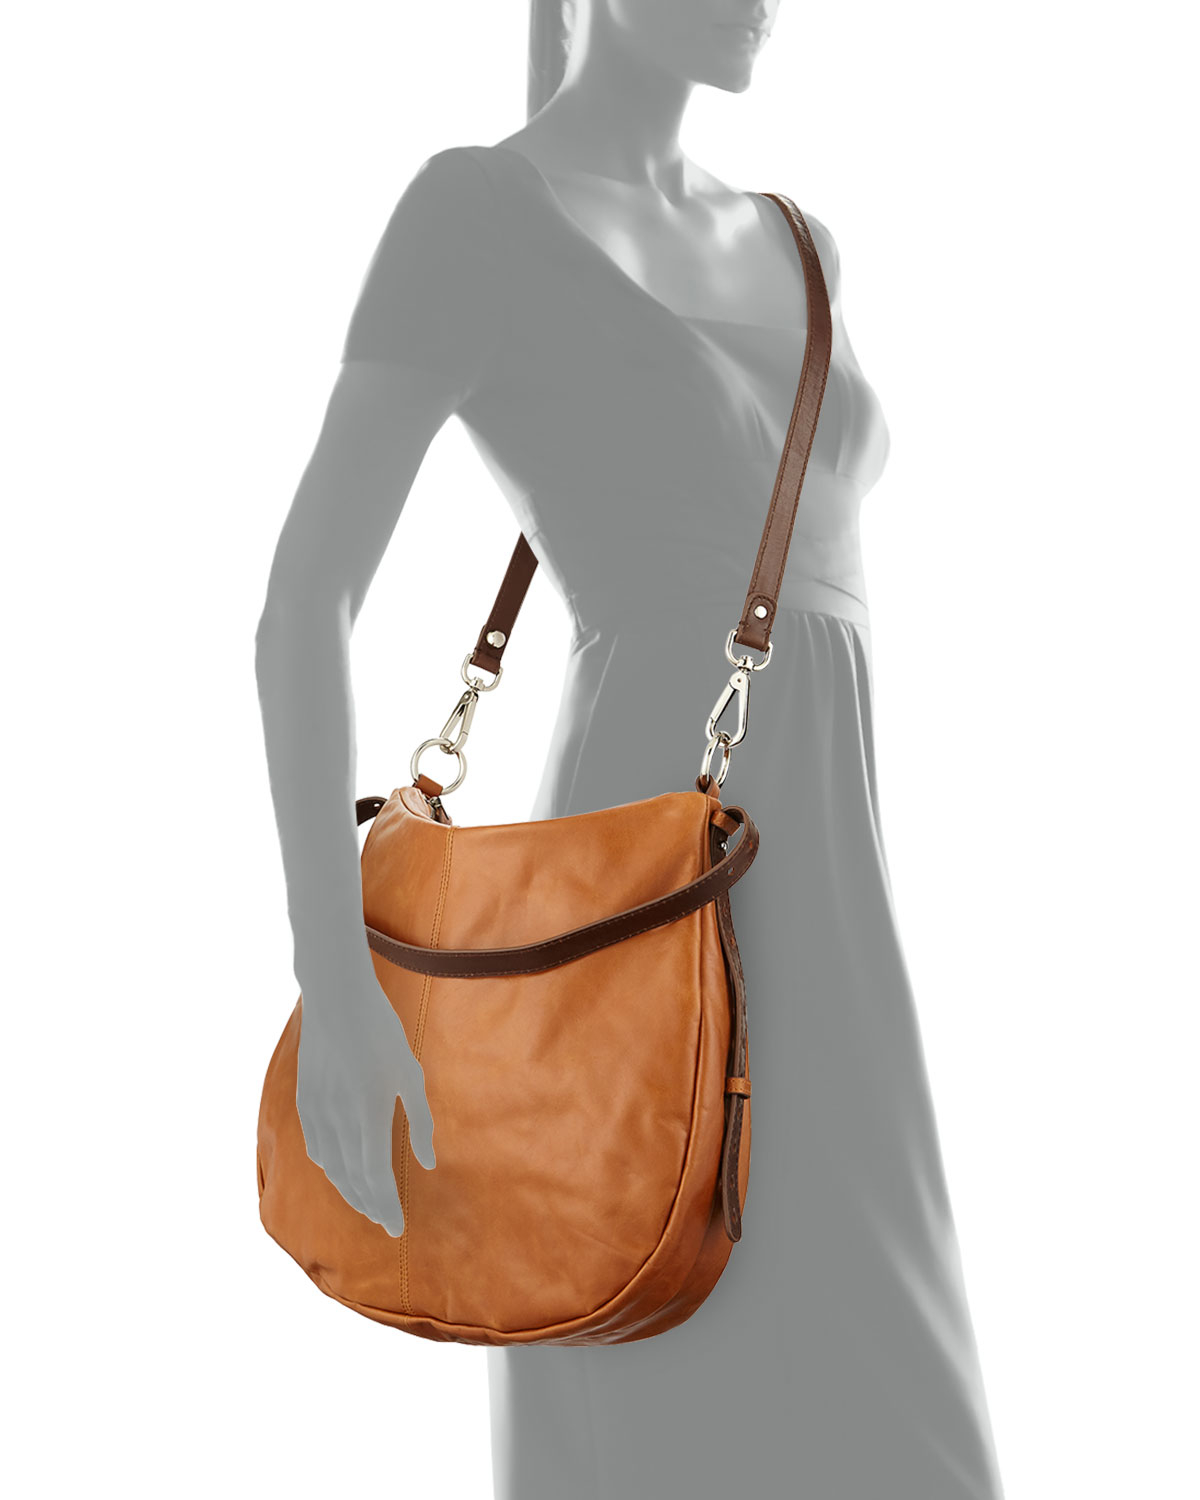 Hobo Kinley Leather Crossbody Bag in Brown | Lyst